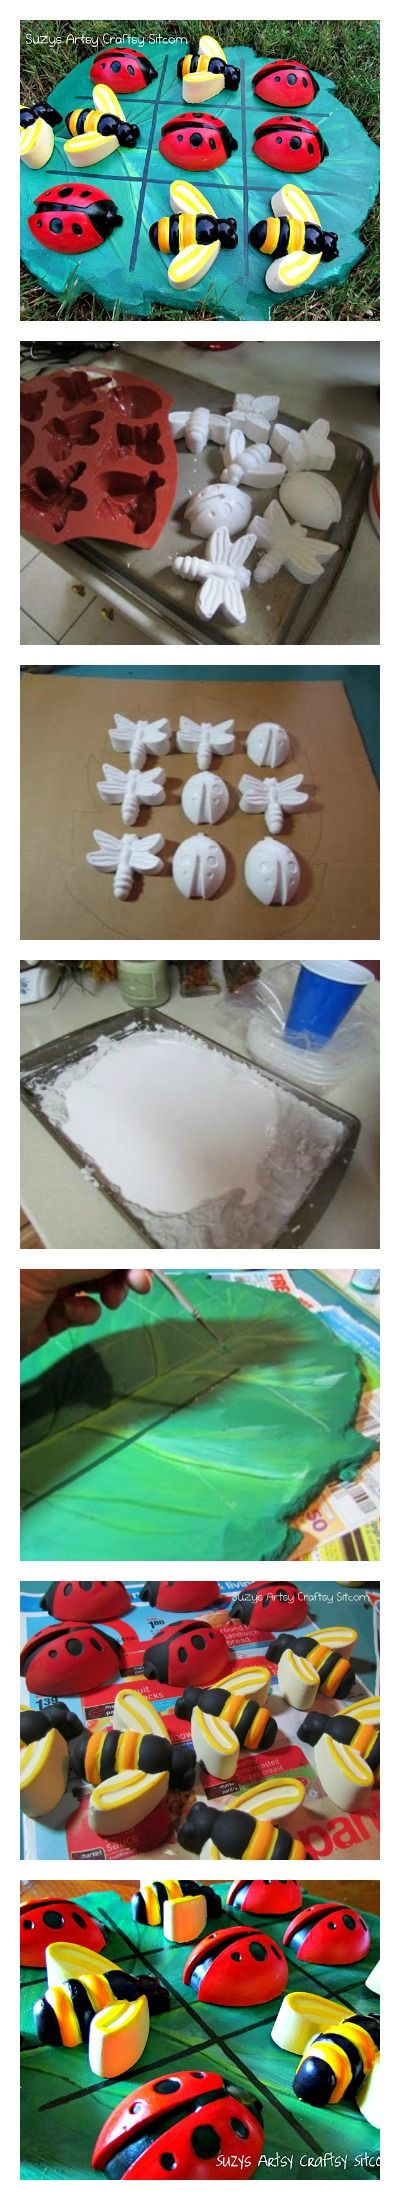 DIY Tic Tac Toe Game made from plaster.  Easy fully illustrated tutorial!